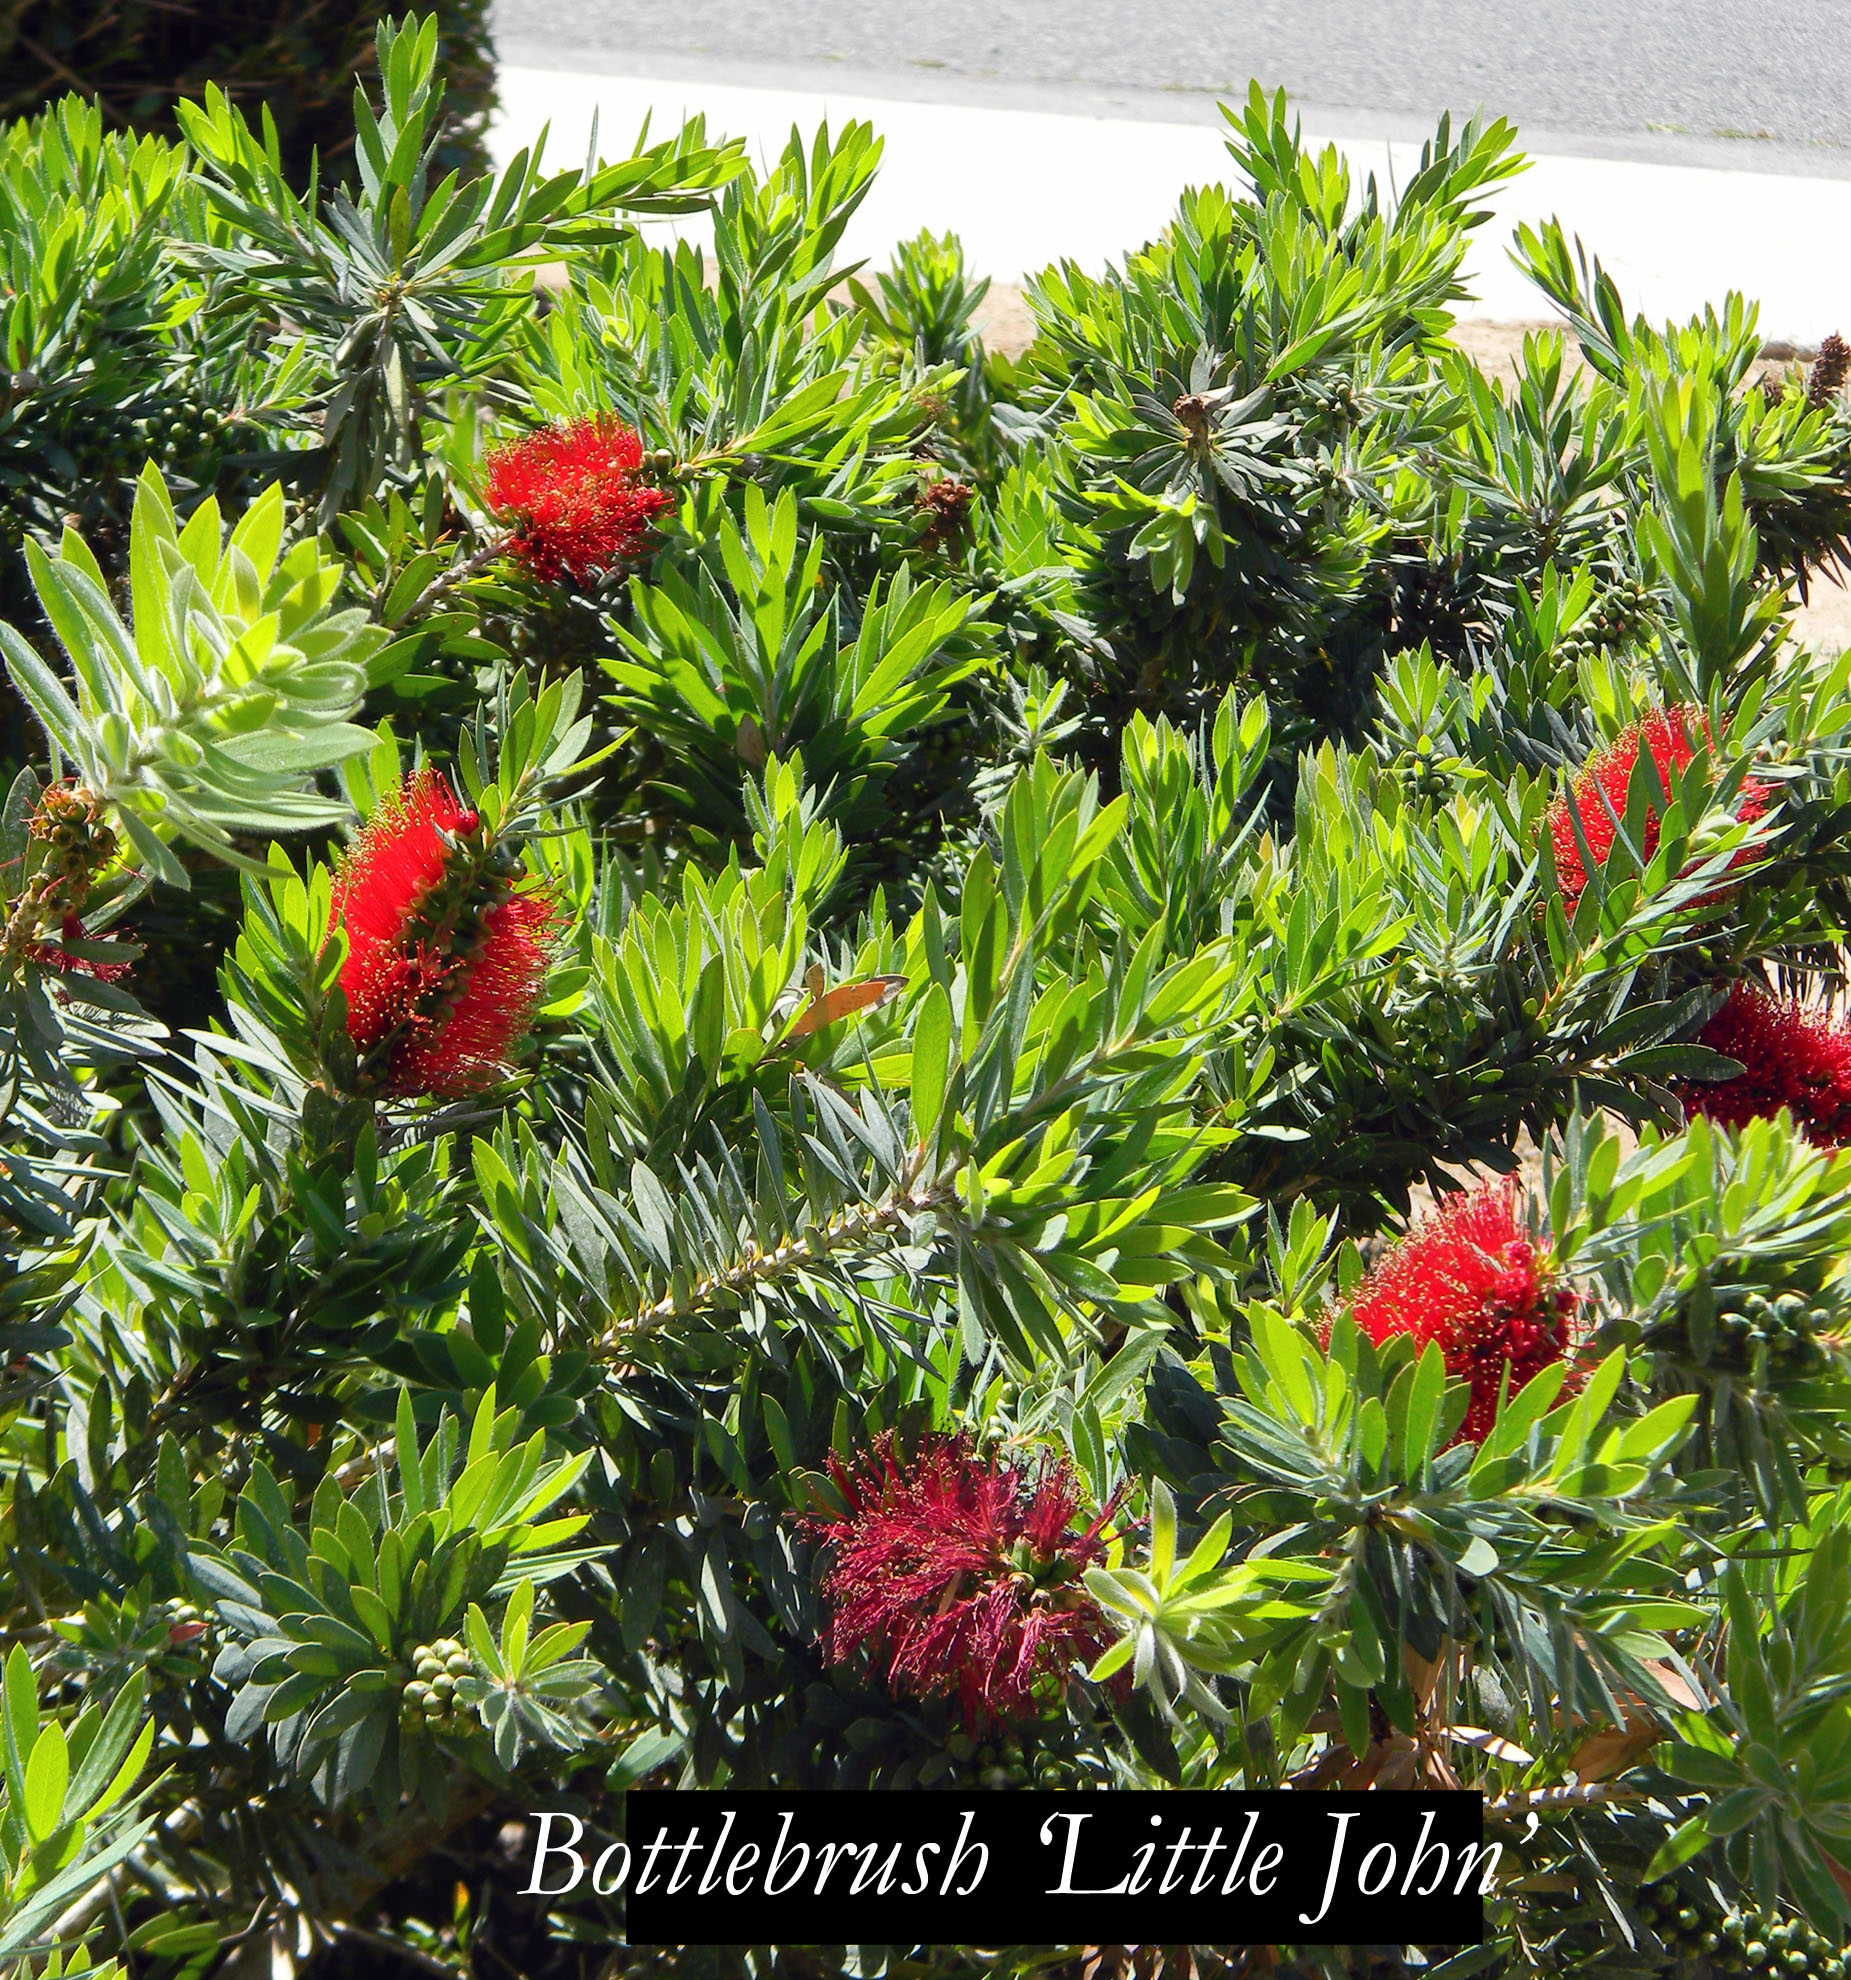 bottlebrush little john